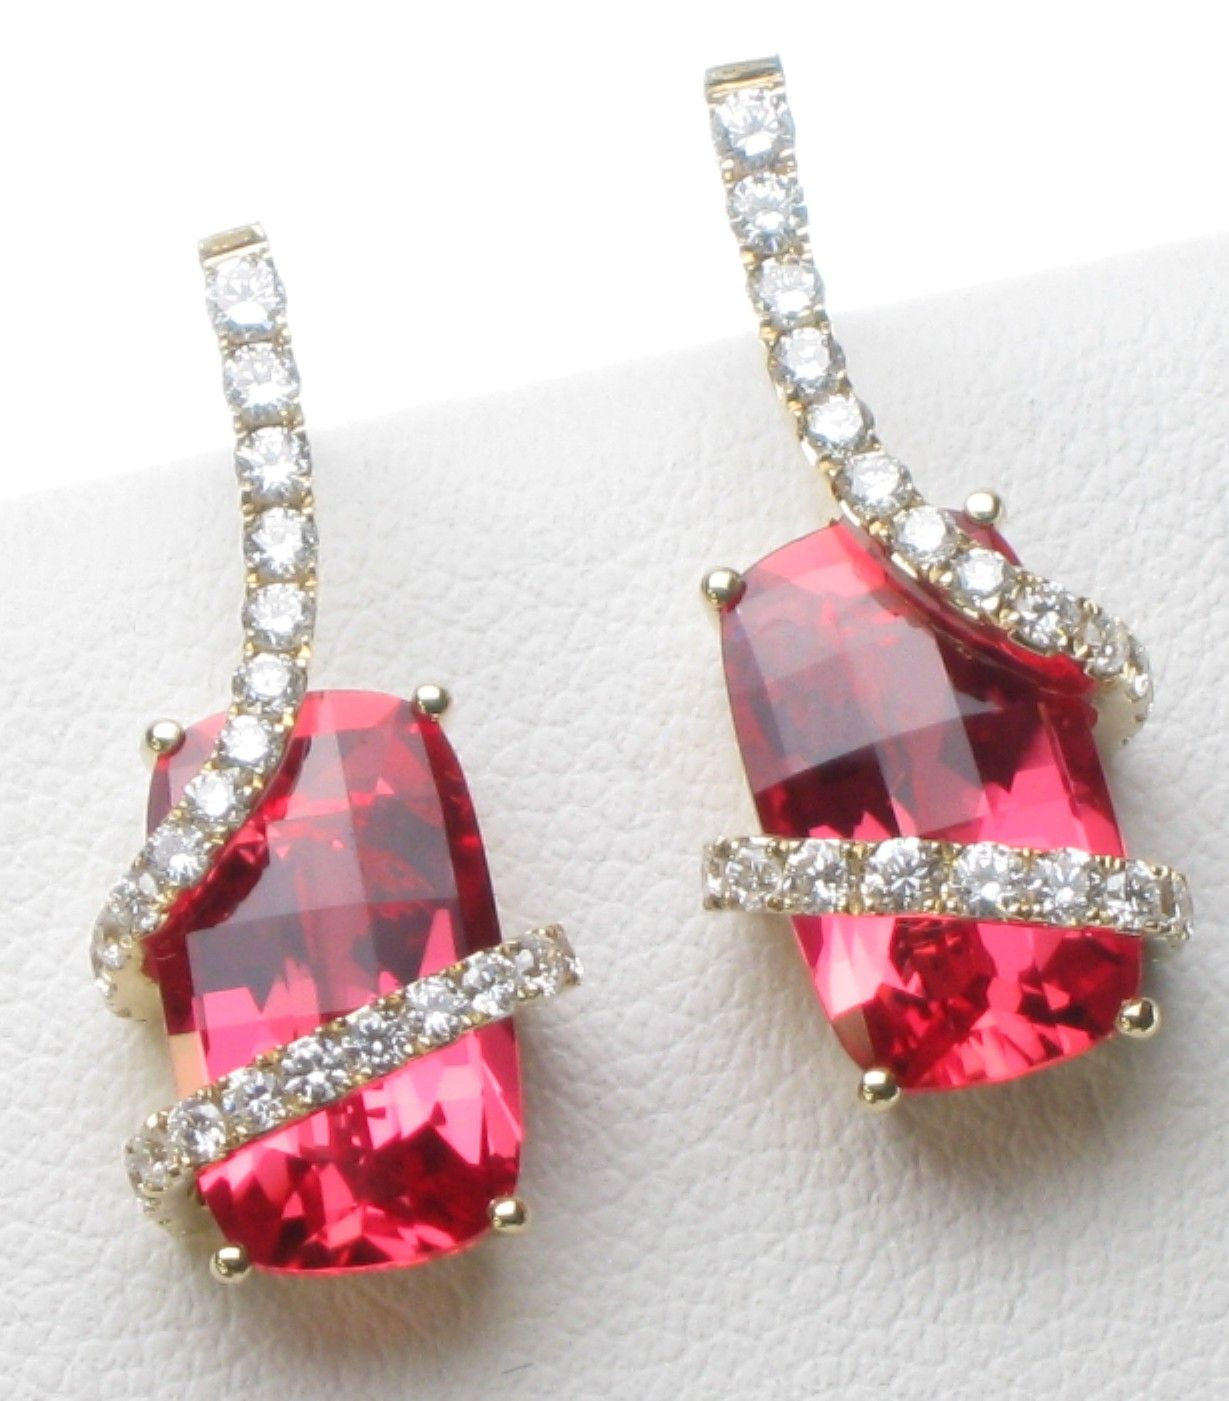 padparadscha sapphire crown in cut earrings emerald pendant created stone gold jk padparcha two rose oval